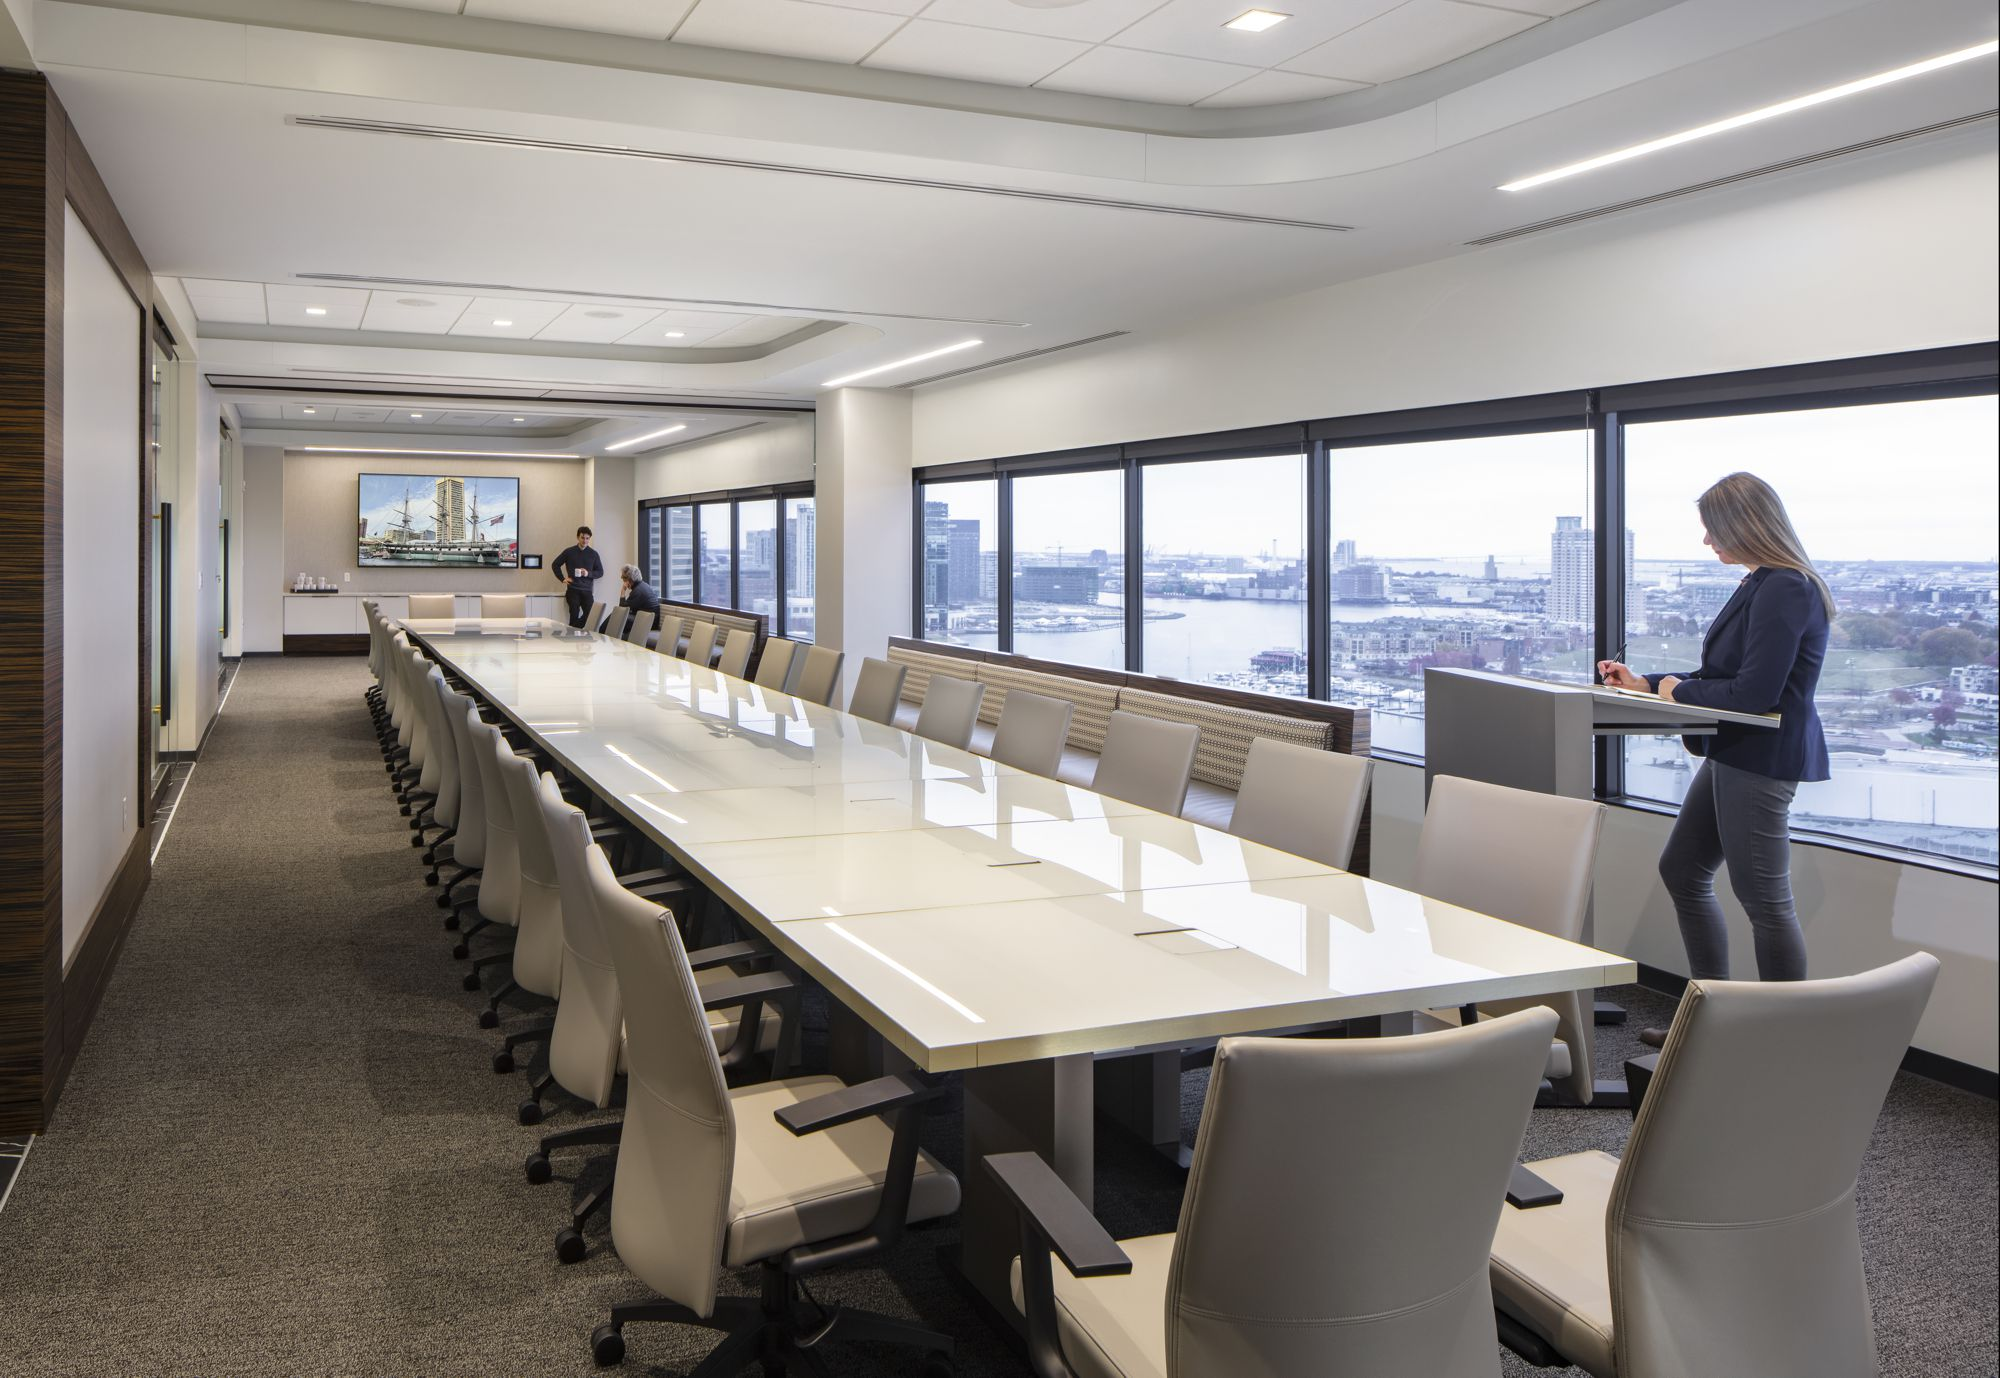 The large flexible conference room features an expansive view of the Baltimore harbor.